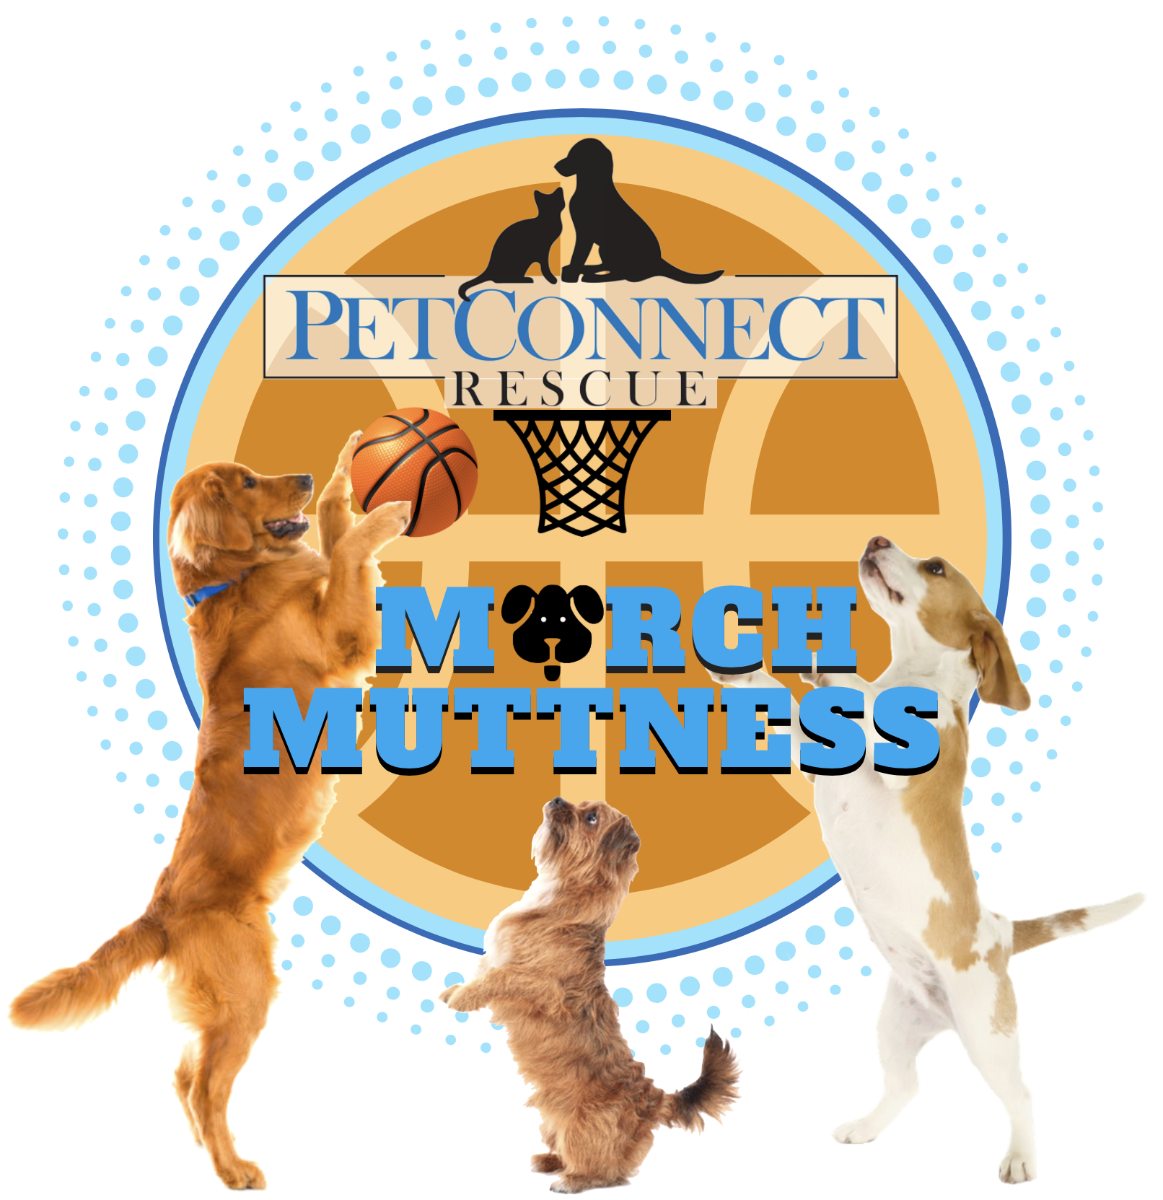 PetConnect Rescue - March Muttness @ Seven Locks Brewery | North Bethesda | Maryland | United States